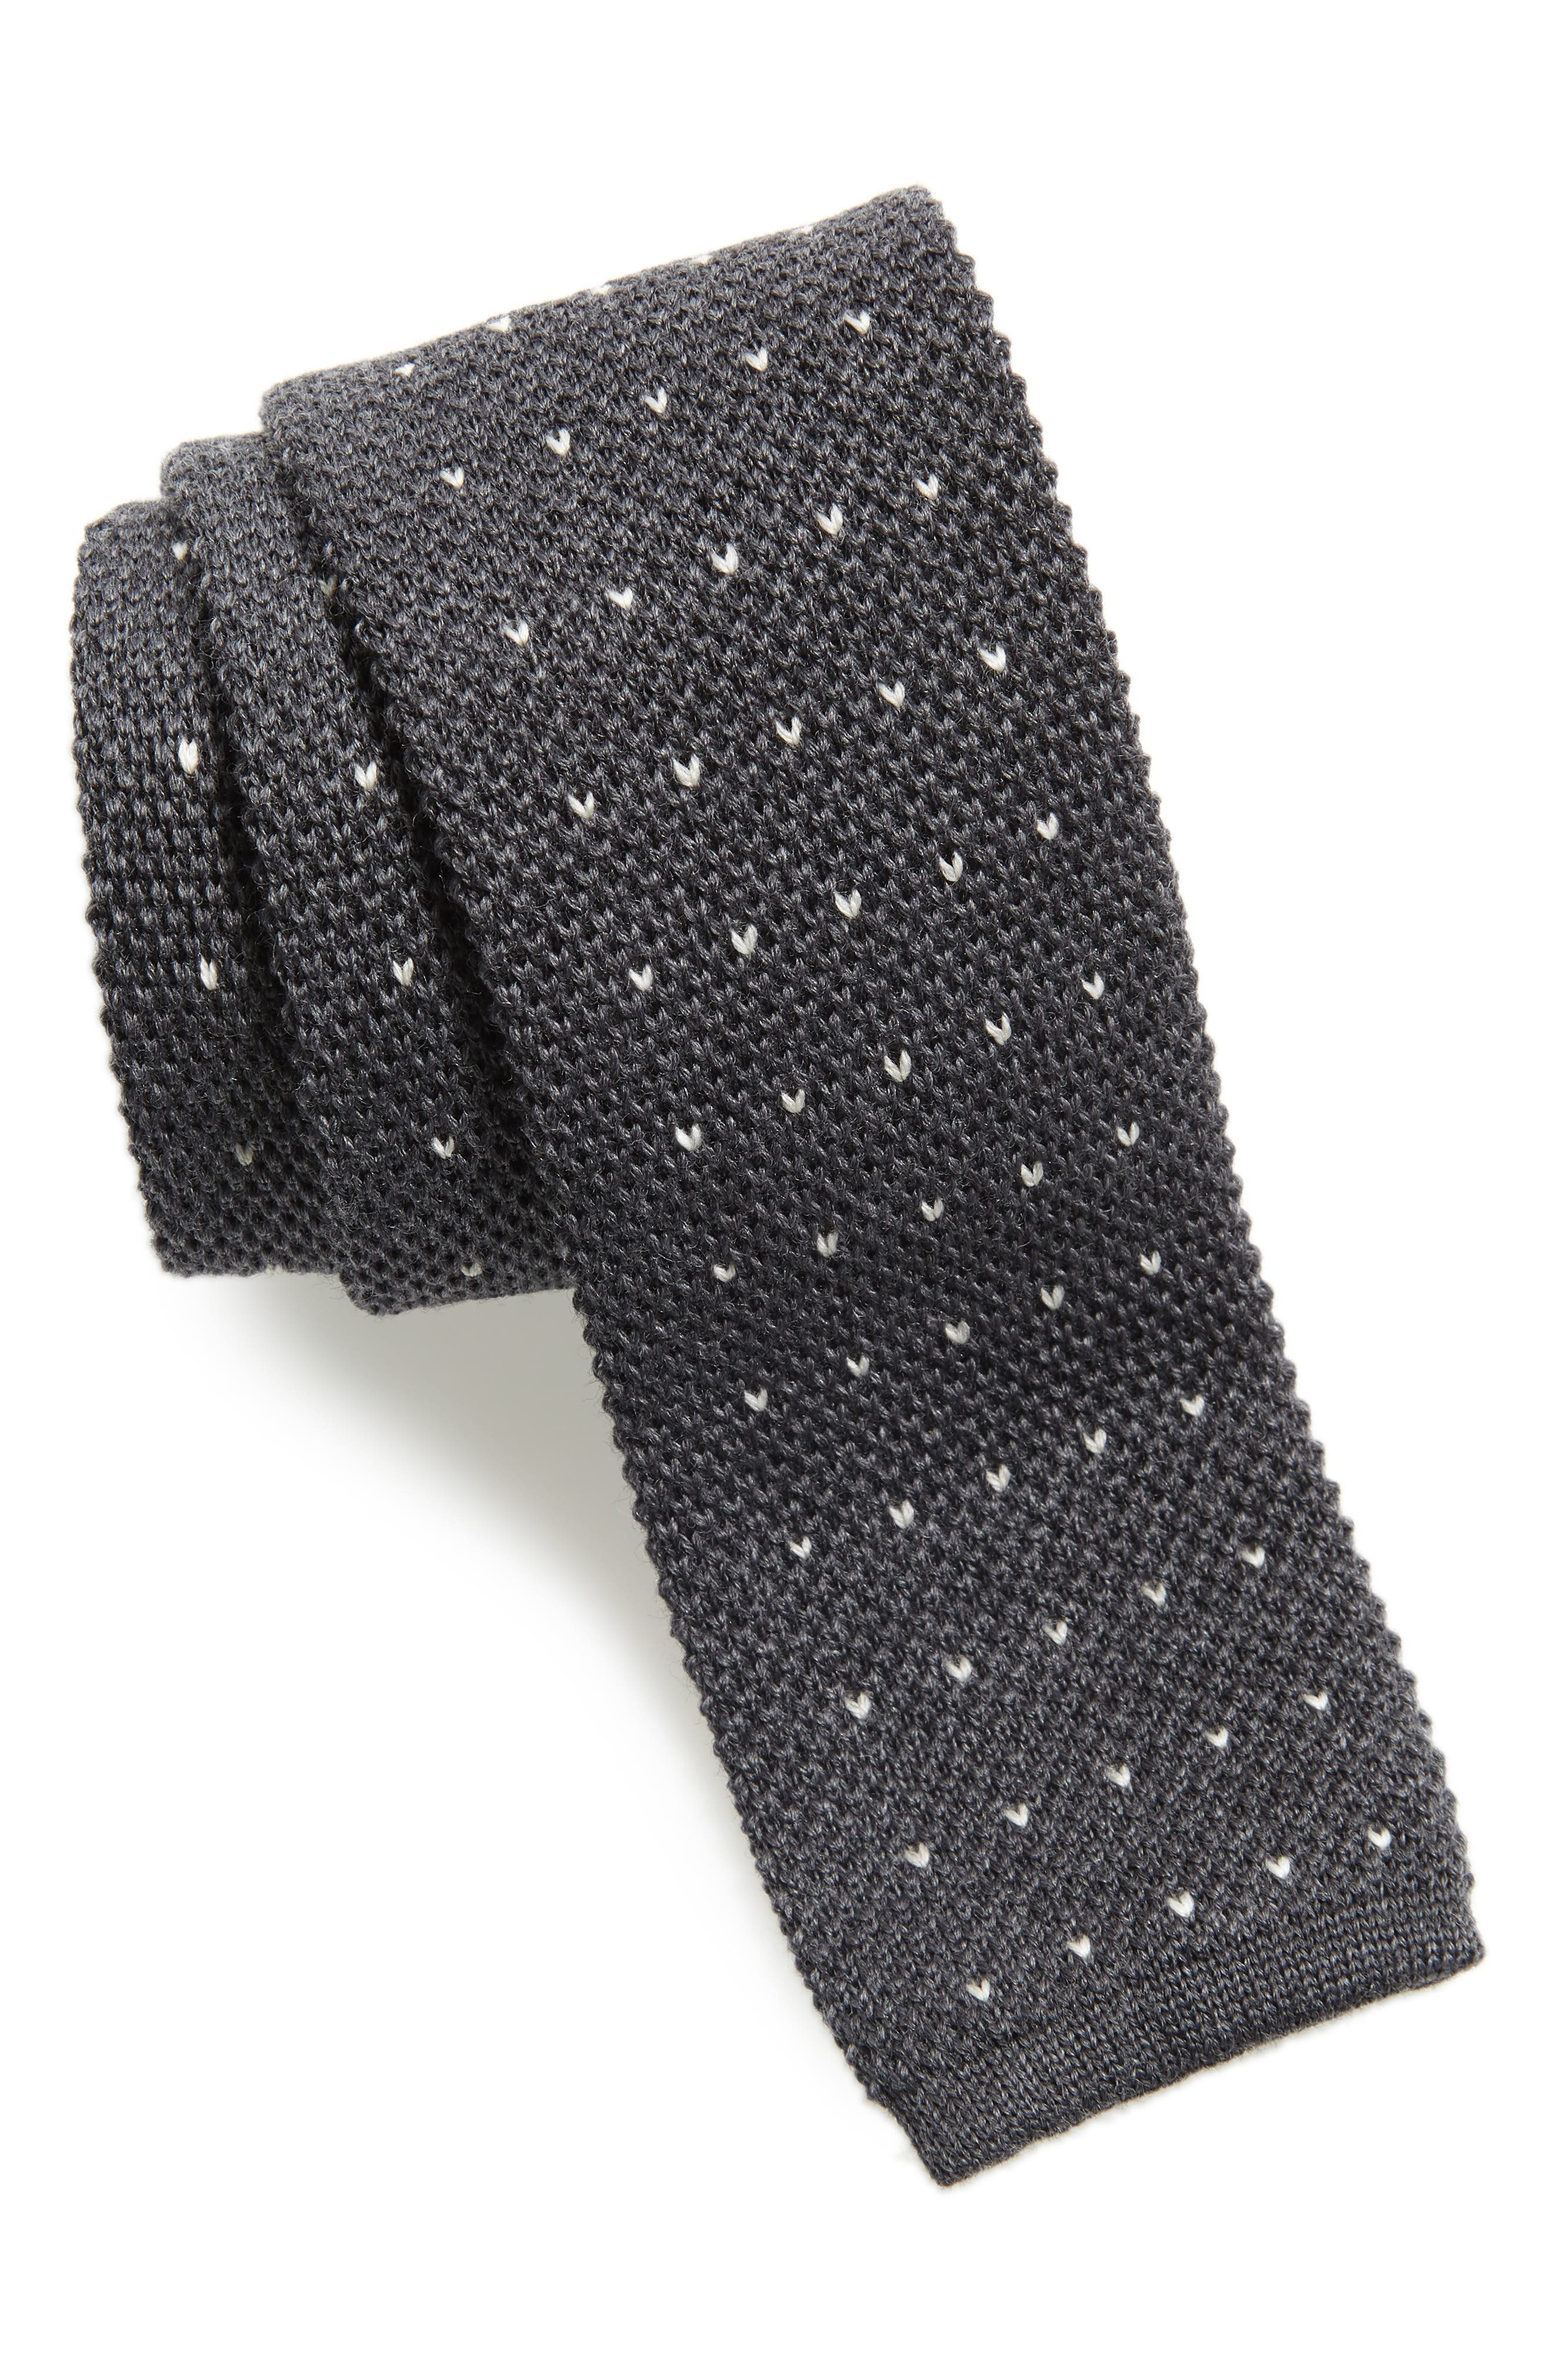 Stitch Wool Knit Tie,                             Main thumbnail 1, color,                             GREY/ WHITE